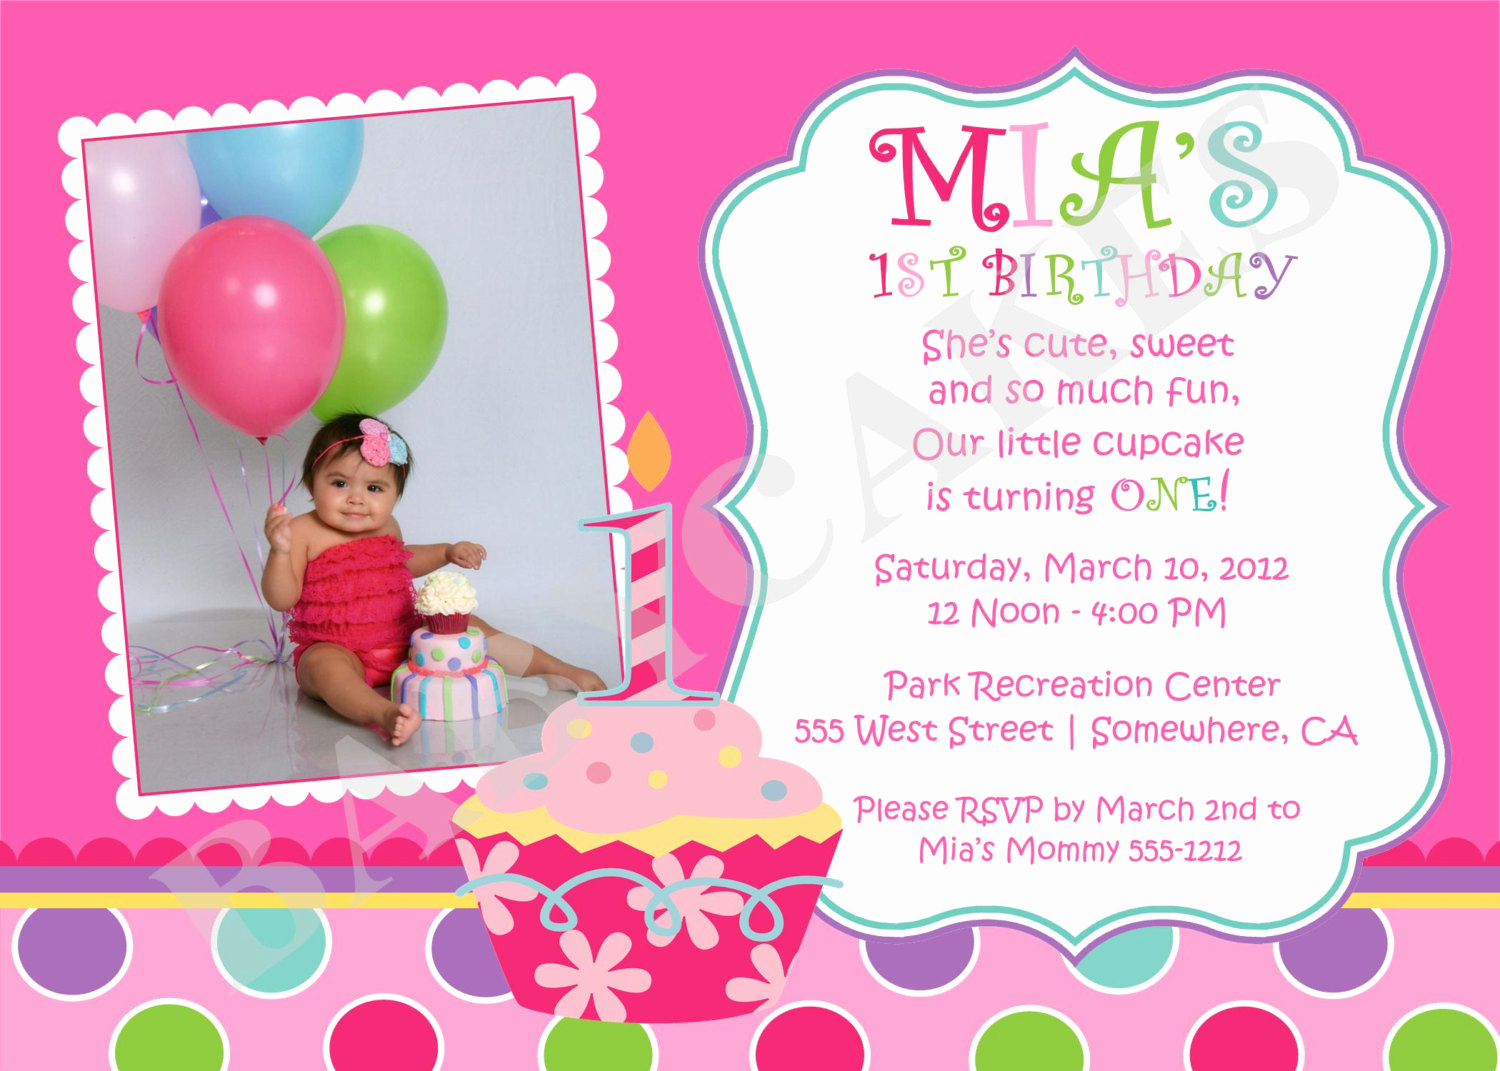 1st Birthday Invitation Wording New Sweet Little Cupcake Birthday Invitation Invite 1st Birthday